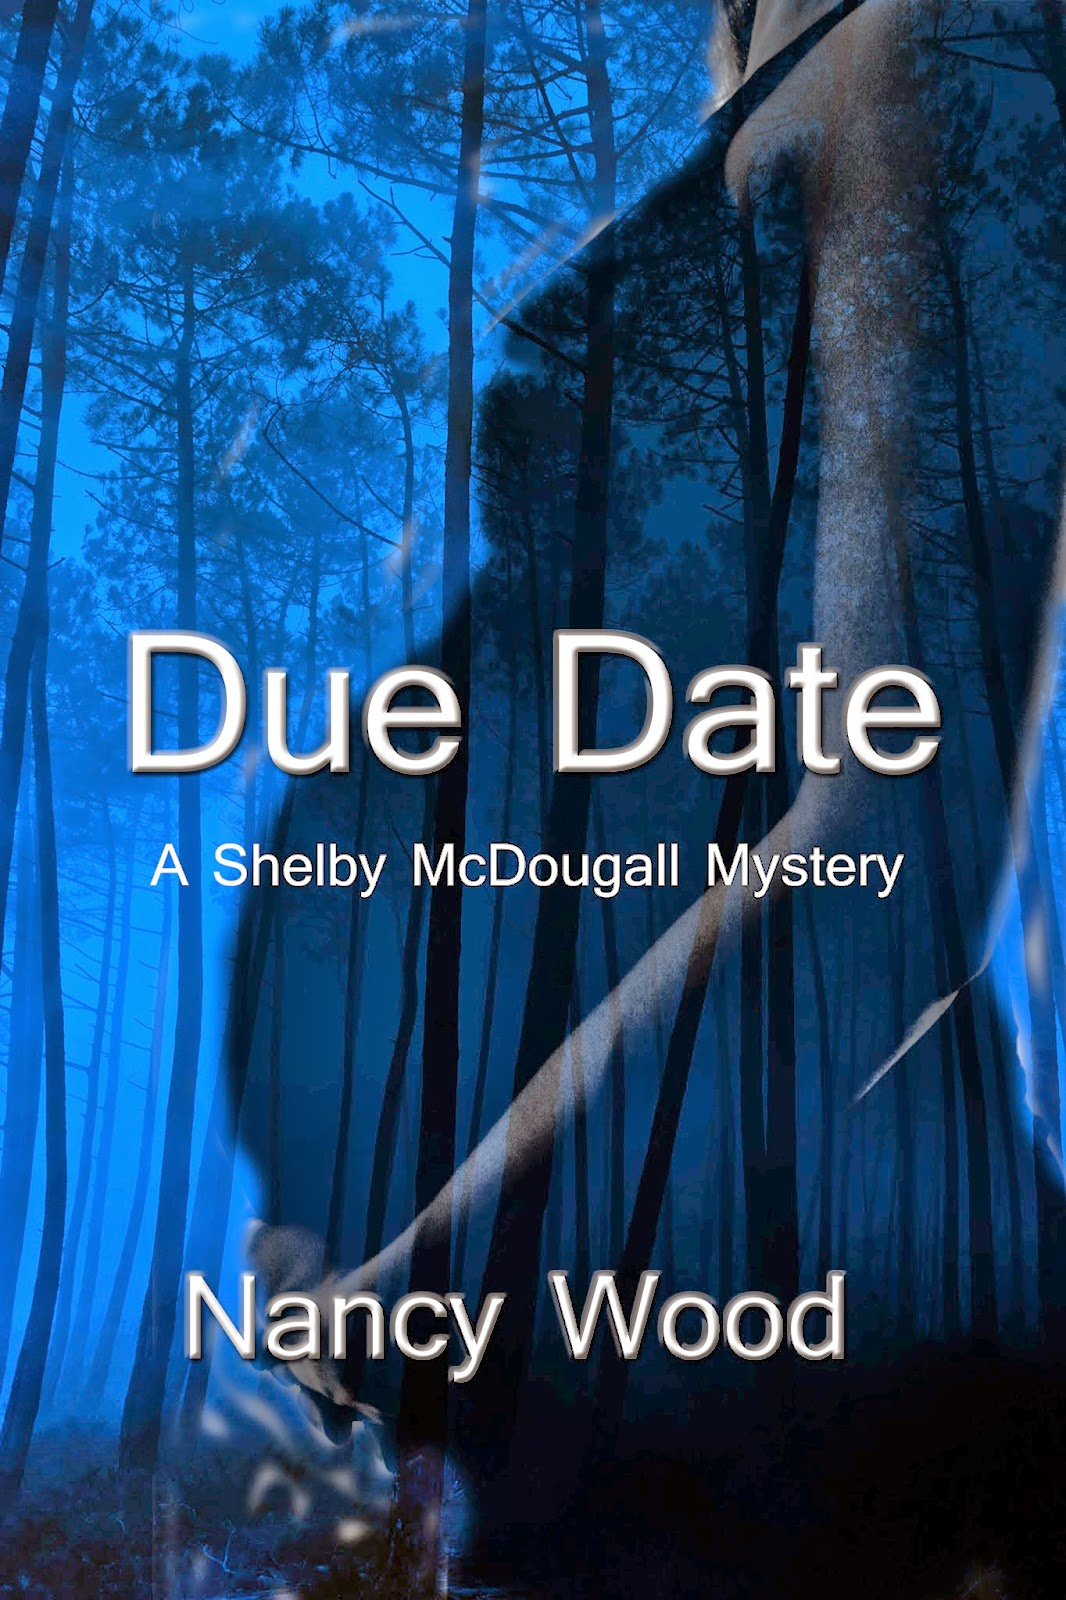 http://www.amazon.com/Due-Date-Nancy-W-Wood-ebook/dp/B00876174M/ref=sr_1_1?s=books&ie=UTF8&qid=1395789347&sr=1-1&keywords=Nancy+Wood+Due+date